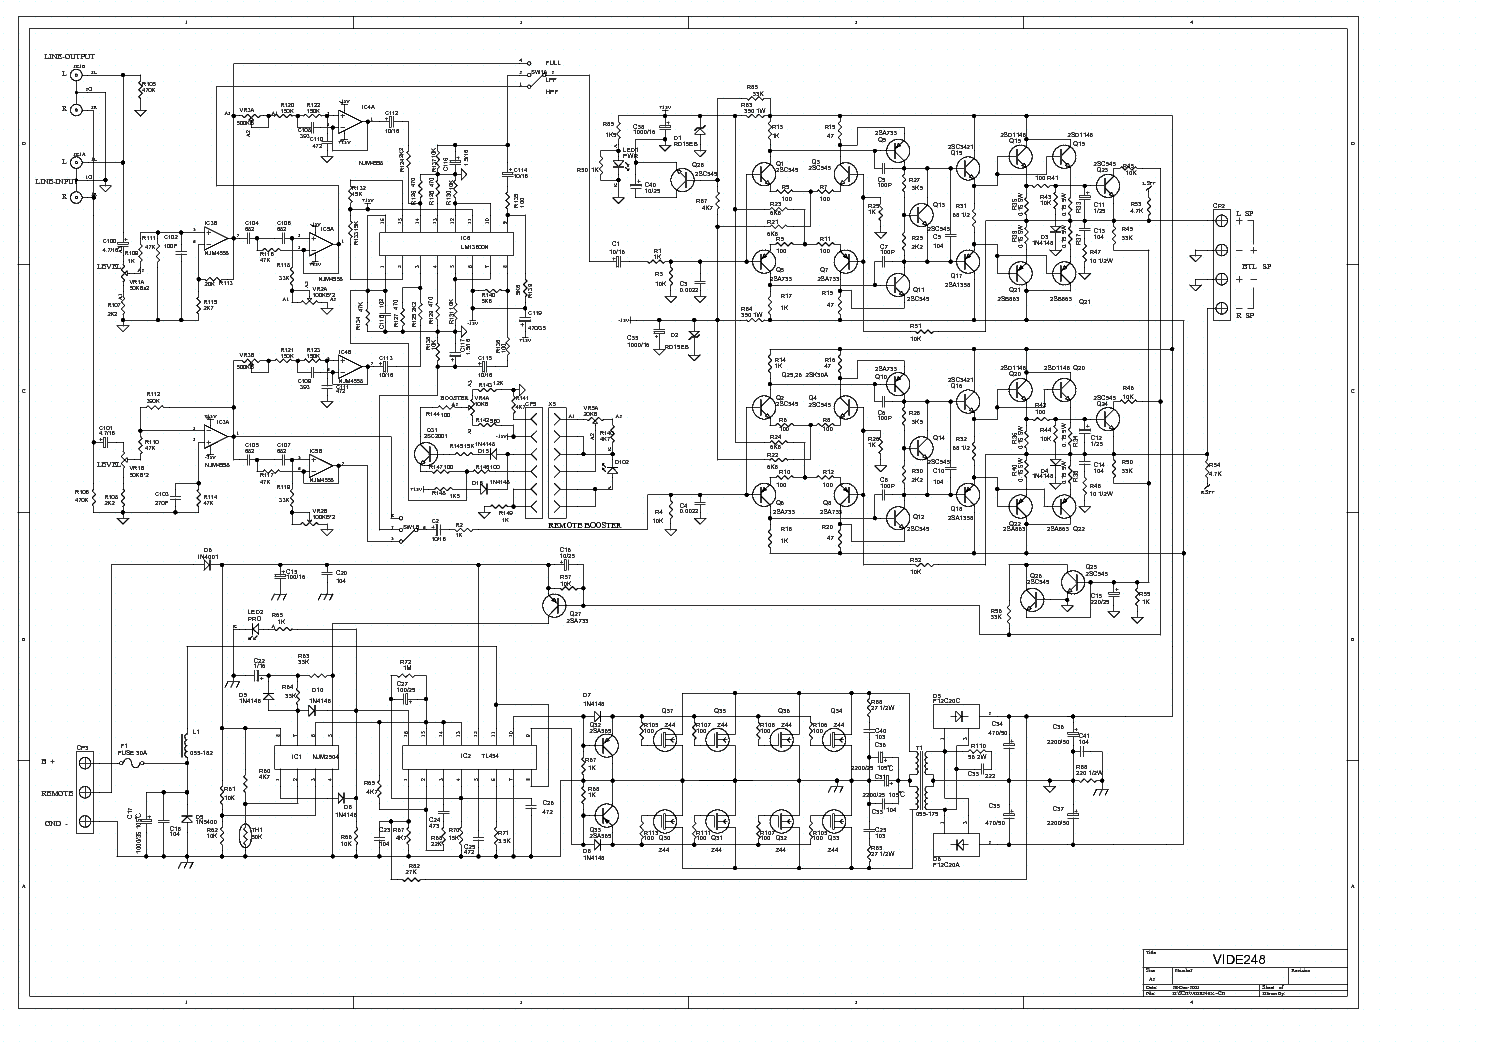 lanzar_vibe248_car_amplifier_sch.pdf_1 lanzar wiring diagram lanzar maxp124d wiring diagram \u2022 free wiring vibe subwoofer wiring diagram at n-0.co